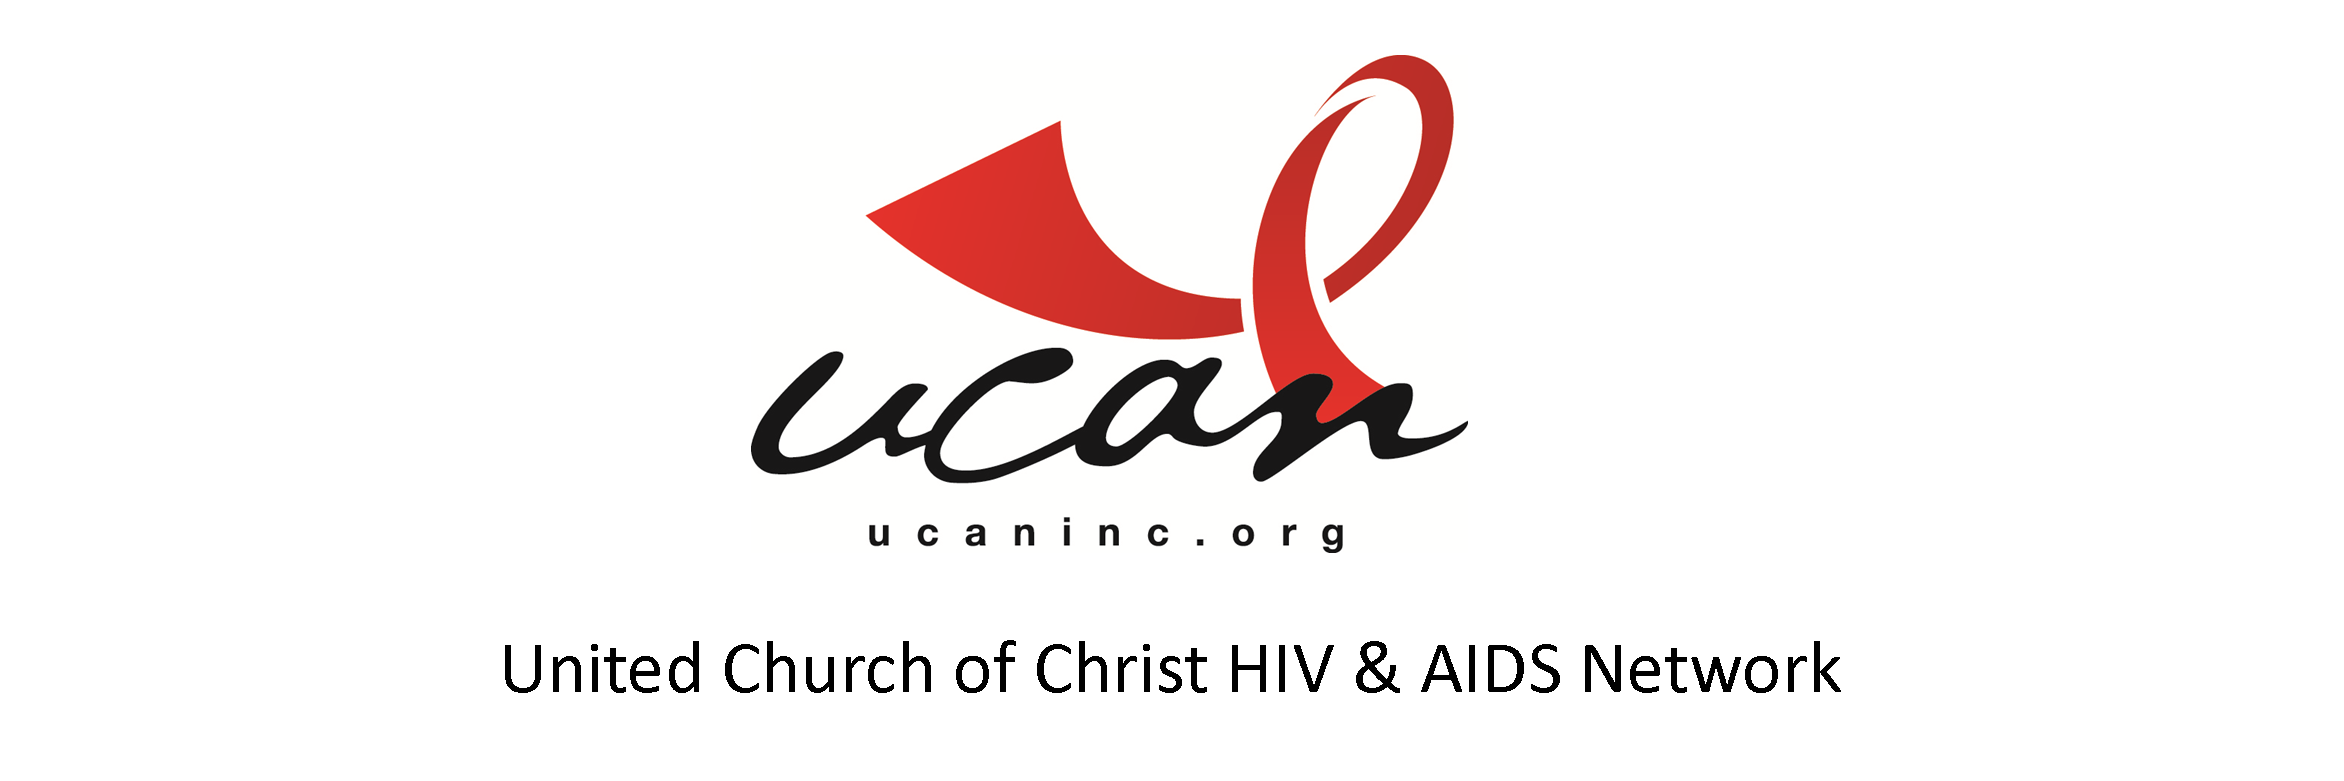 World AIDS Day - United Church of Christ